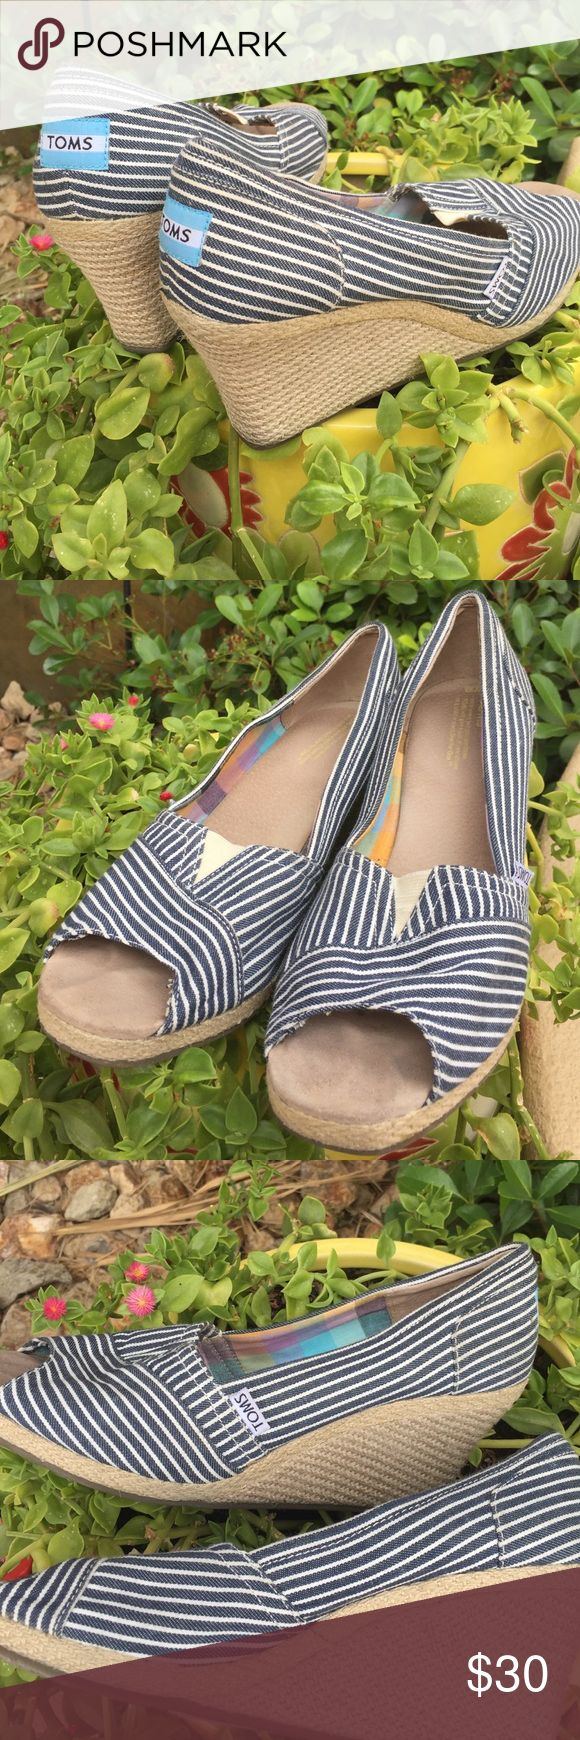 TOMS wedges Toms...Navy & White  stripe Wedges...Size 10 TOMS Shoes Wedges